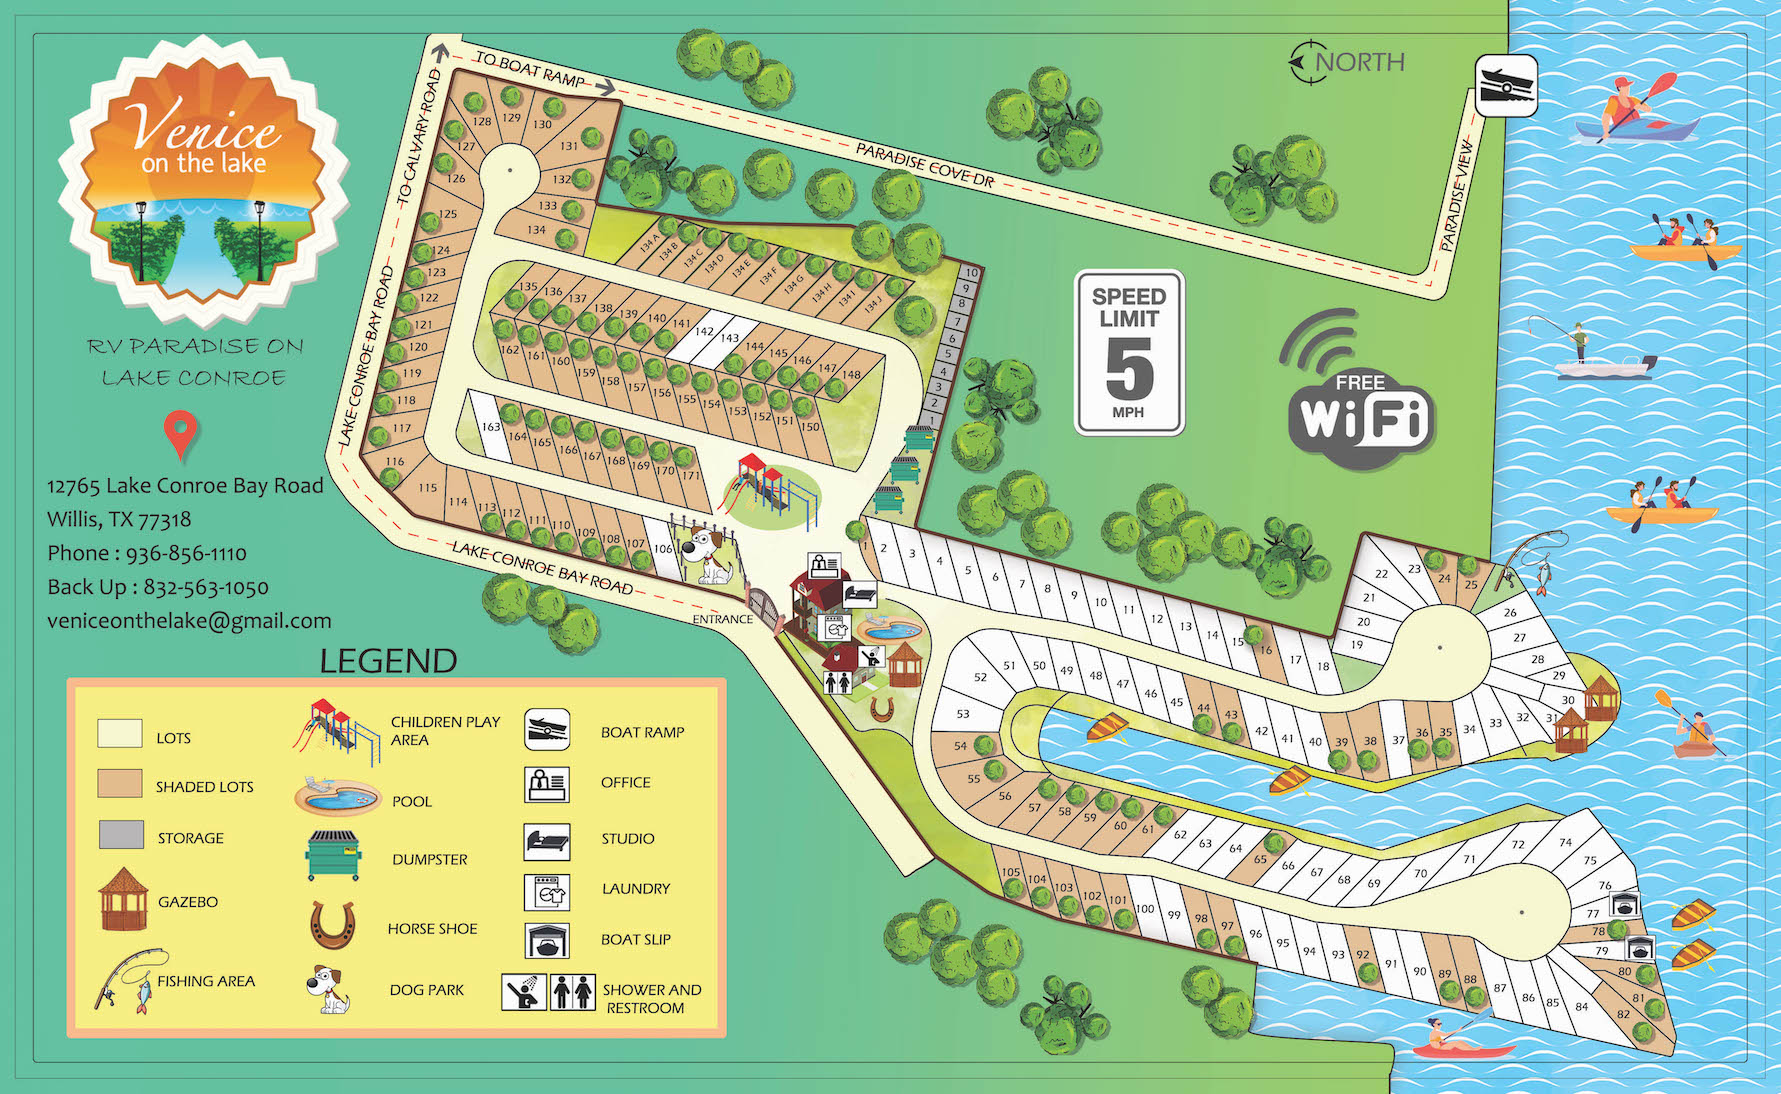 Best RV Park on Lake Conroe, Venice On the Lake